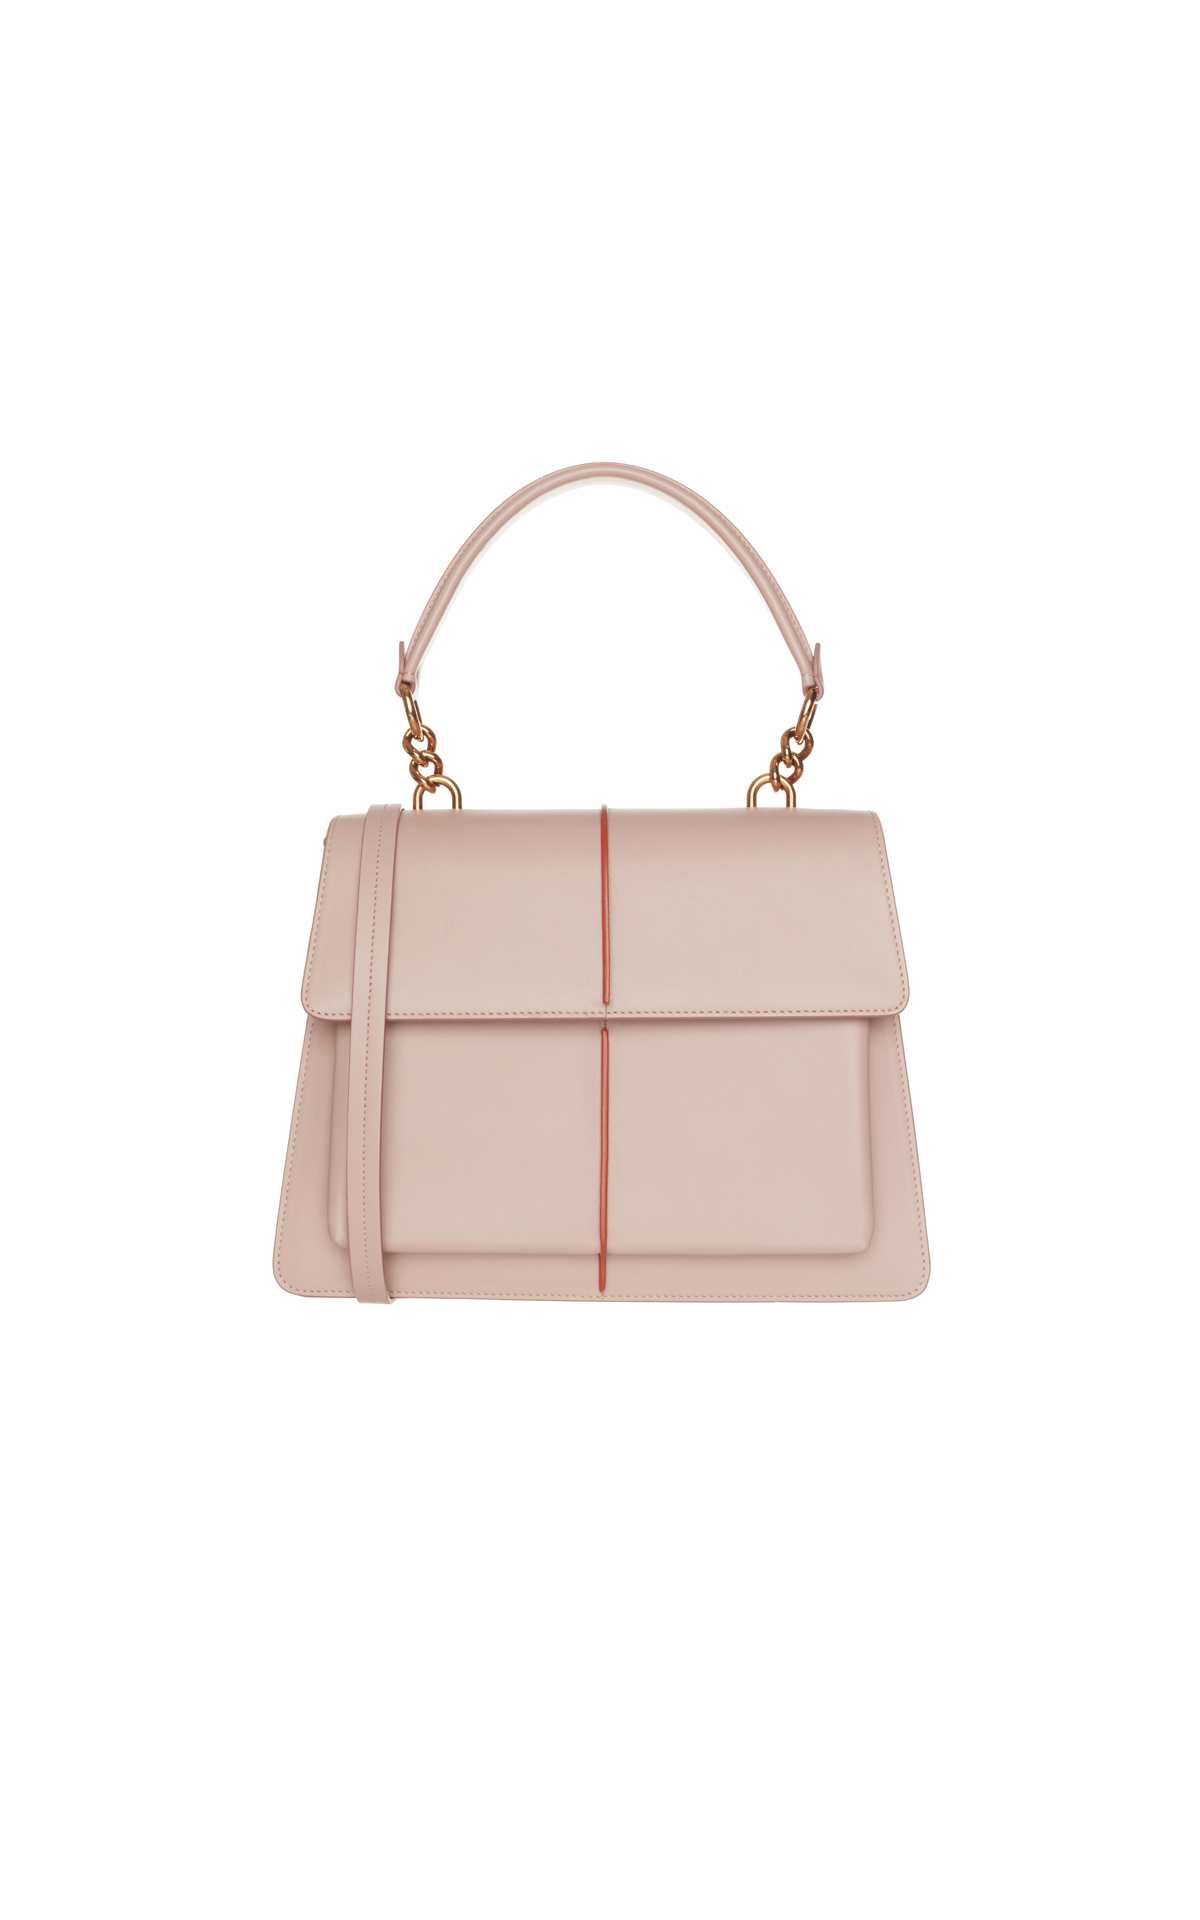 Marni Attach bag handbag vitello from Bicester Village